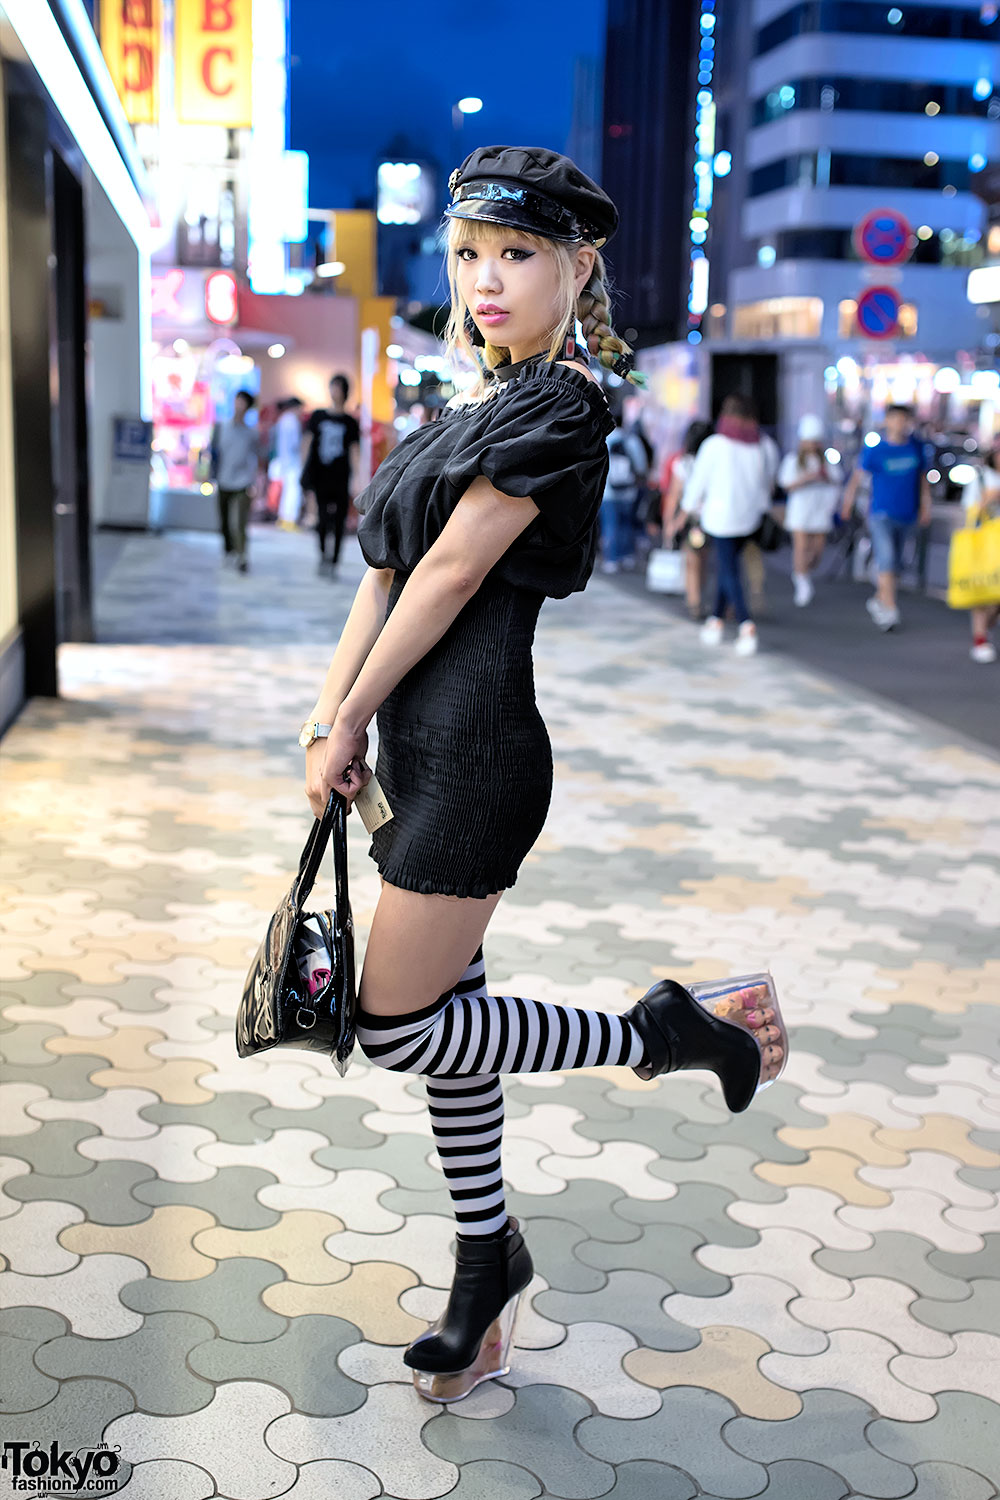 Blonde Braids, Bodycon, Striped Socks & Doll Head Platforms in Harajuku